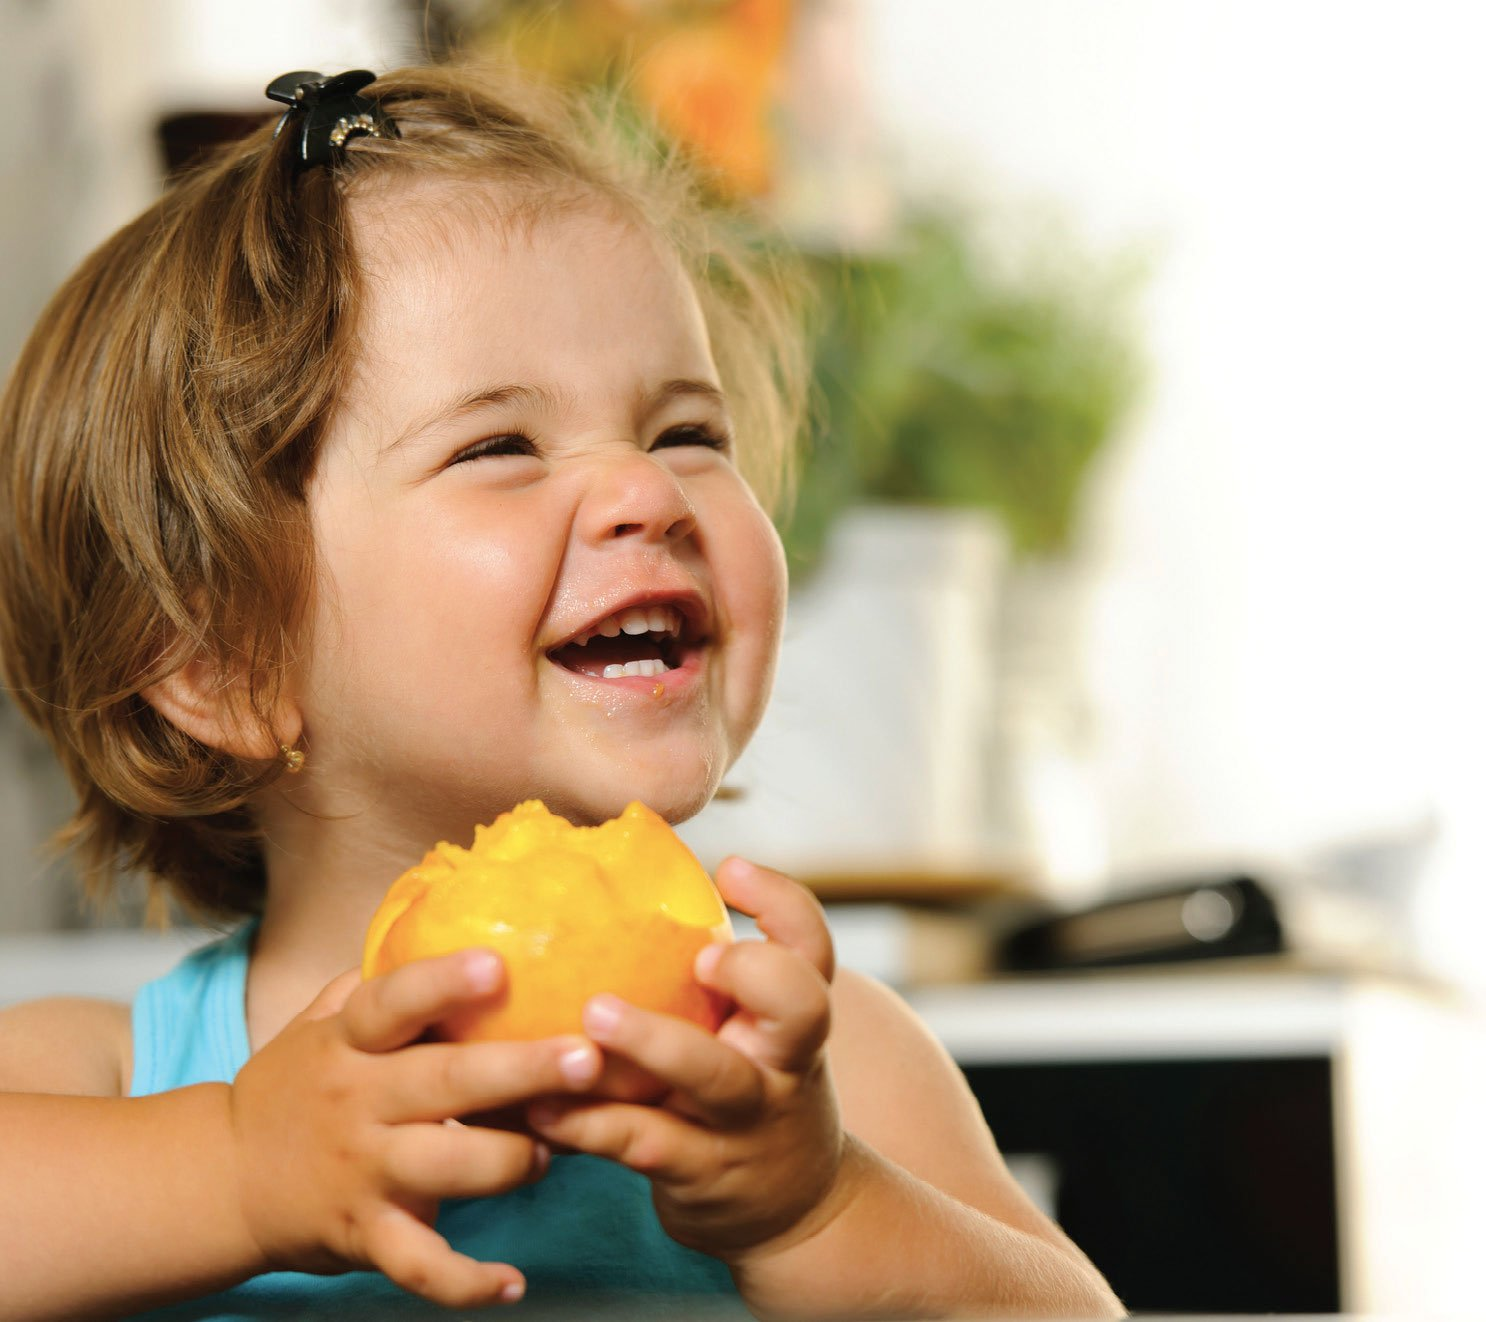 A child eating a fruit.